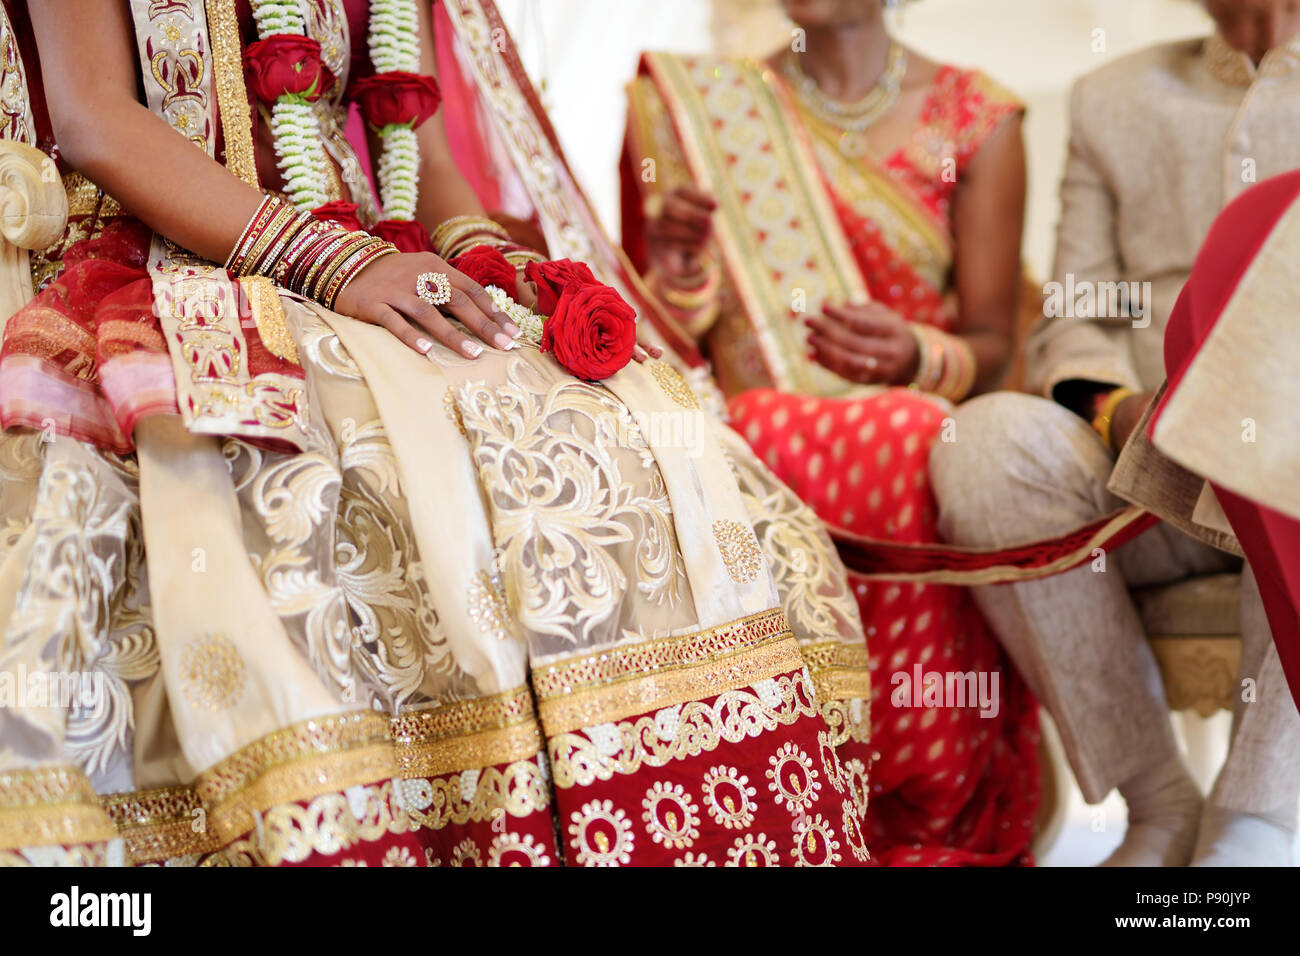 Amazing Hindu Wedding Ceremony Details Of Traditional Indian Wedding Beautifully Decorated Hindu Wedding Accessories Indian Marriage Traditions